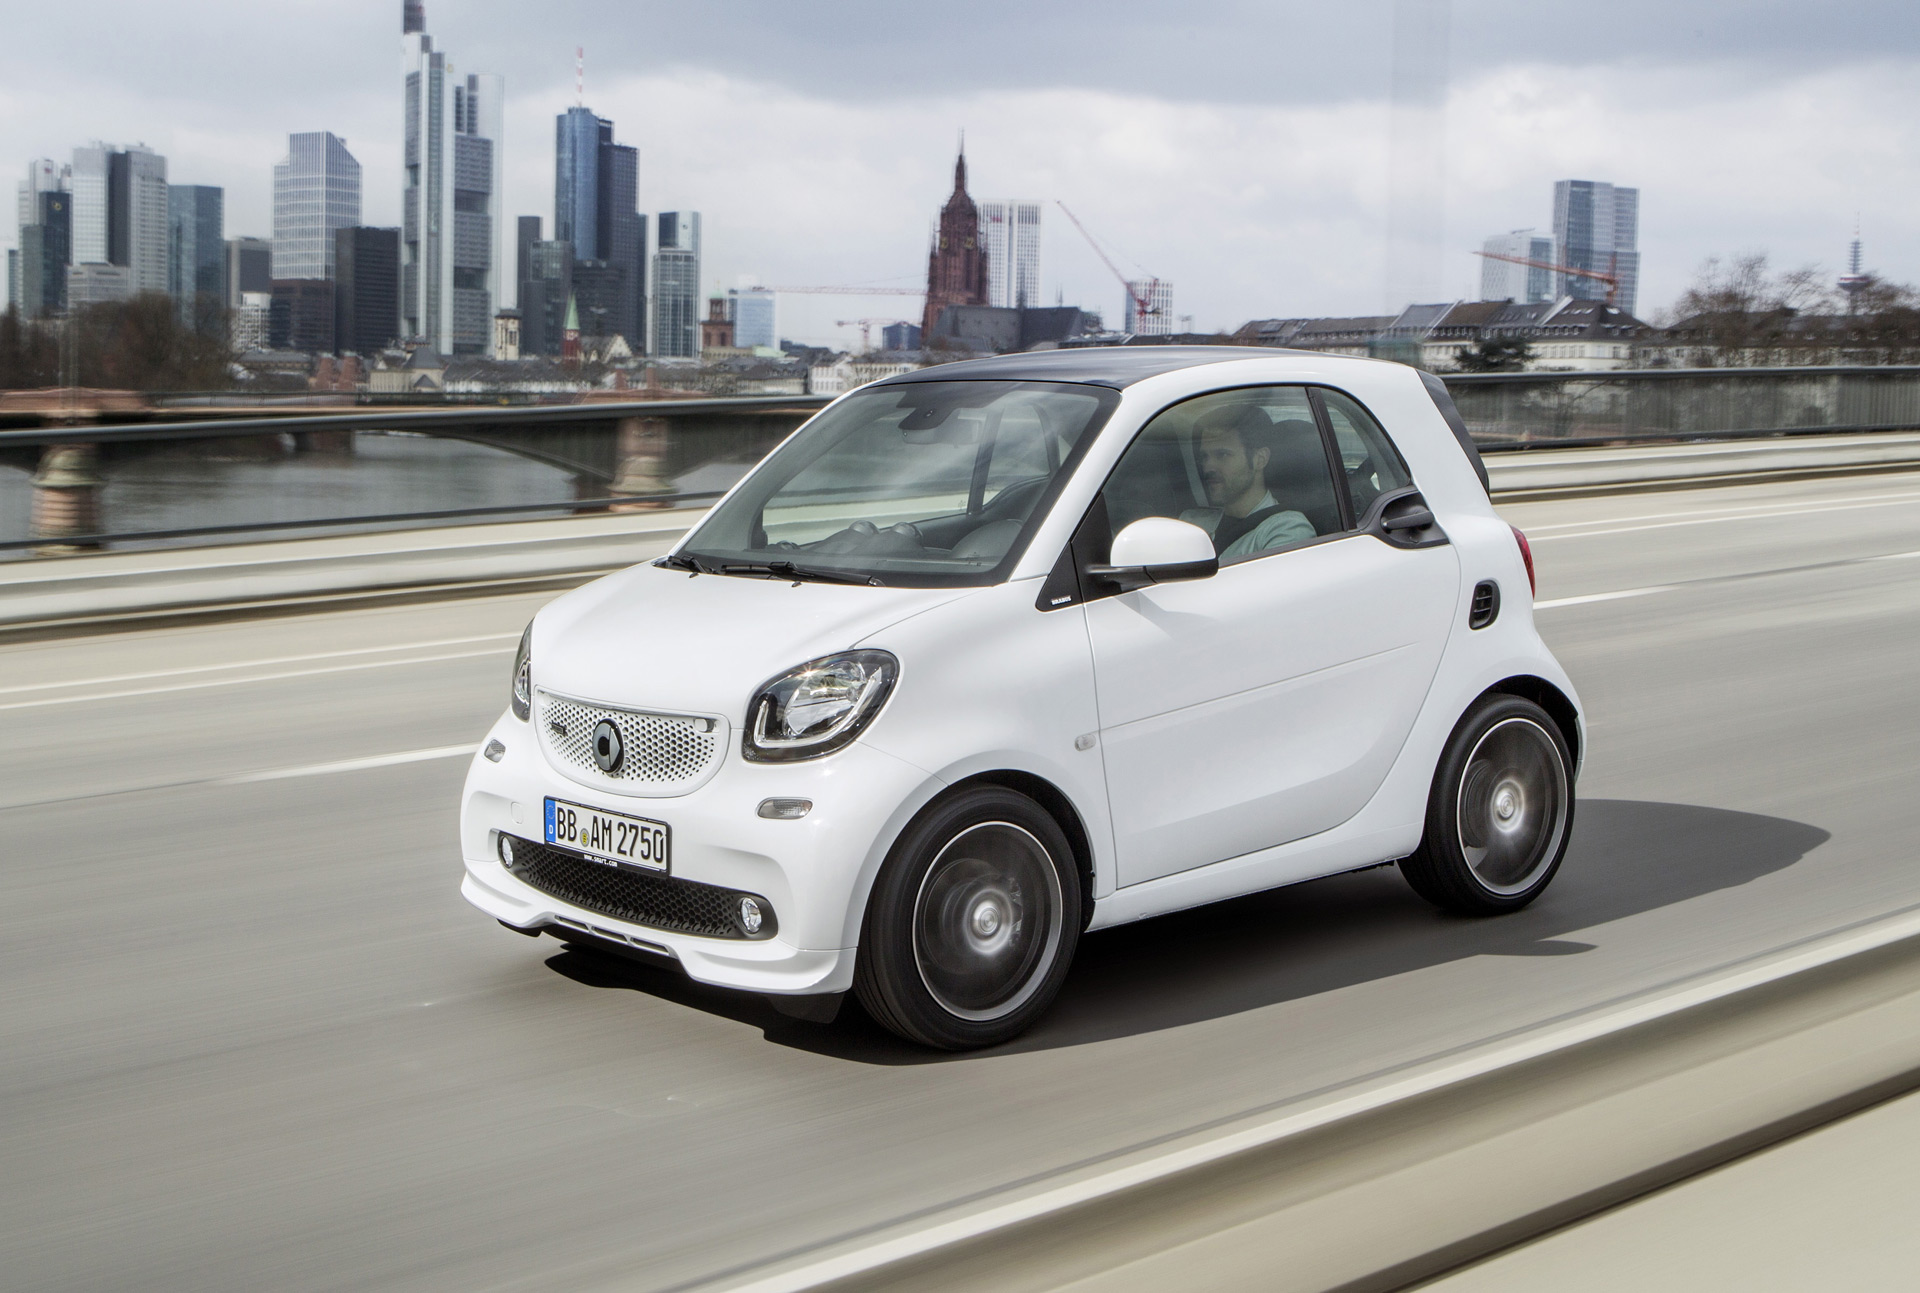 Populaire Smart ForTwo gets more power thanks to Brabus OL52